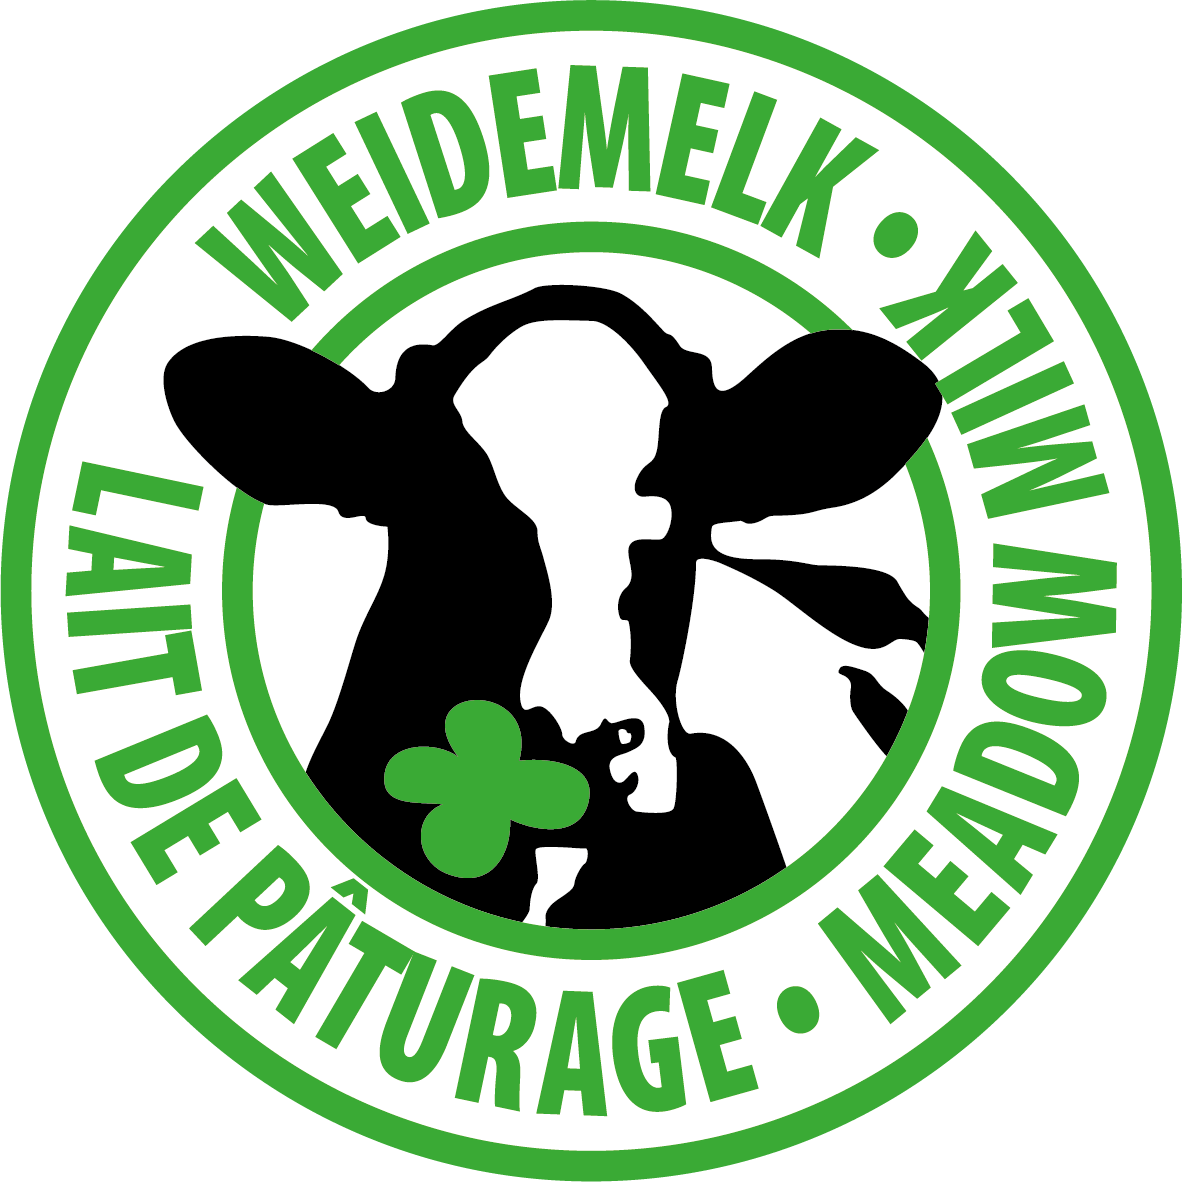 NL EN FR Weidemelk Meadow Milk Lait de Paturage